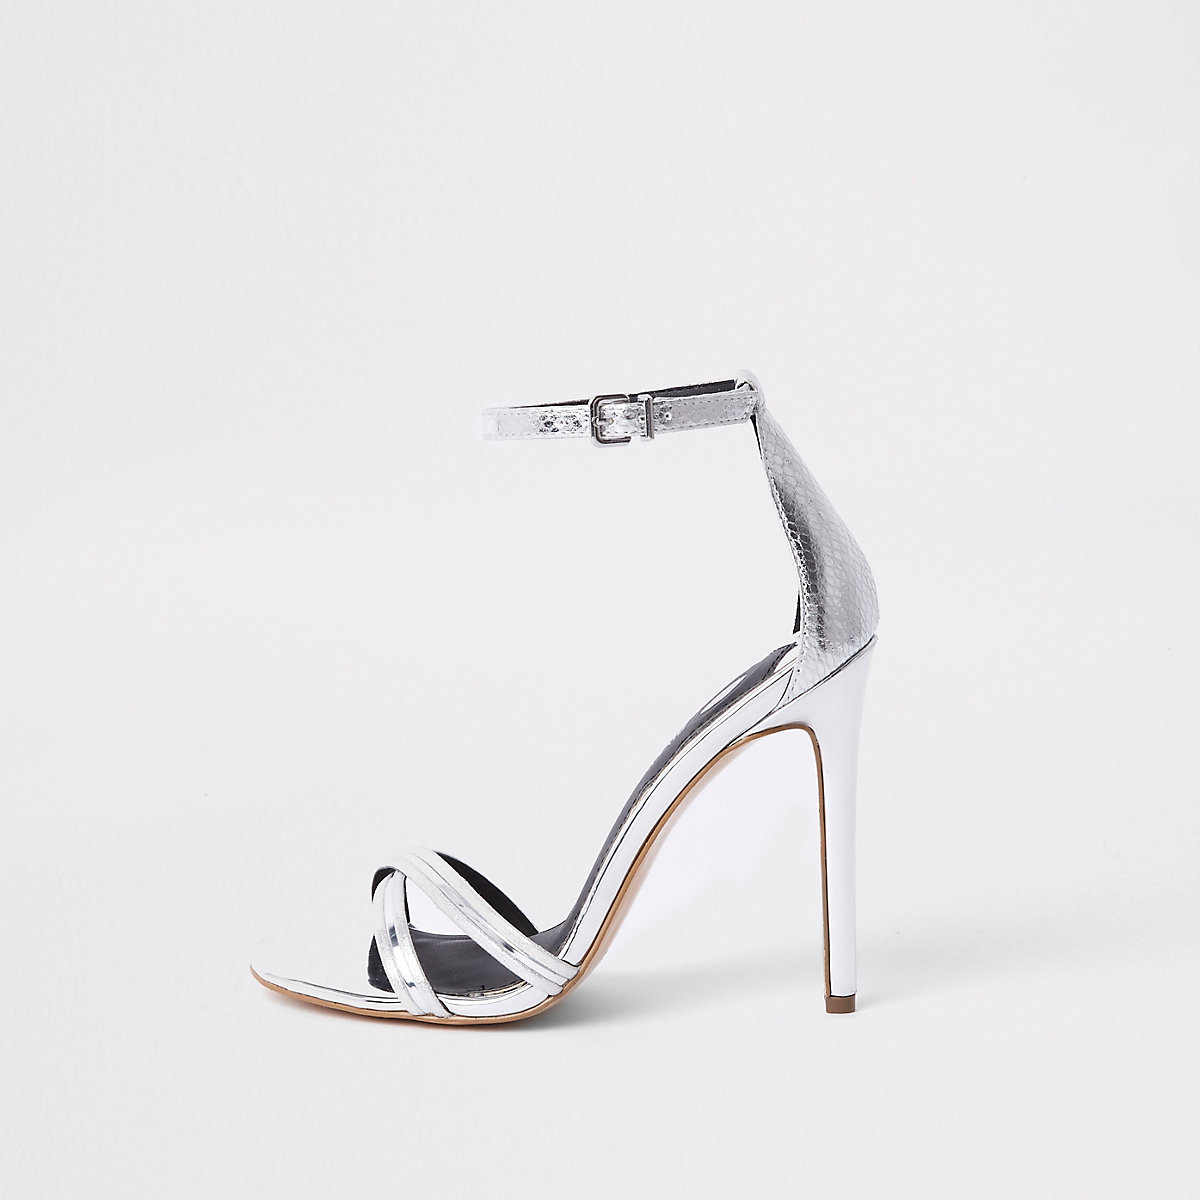 Barely There – Sandalen in Silber-Metallic